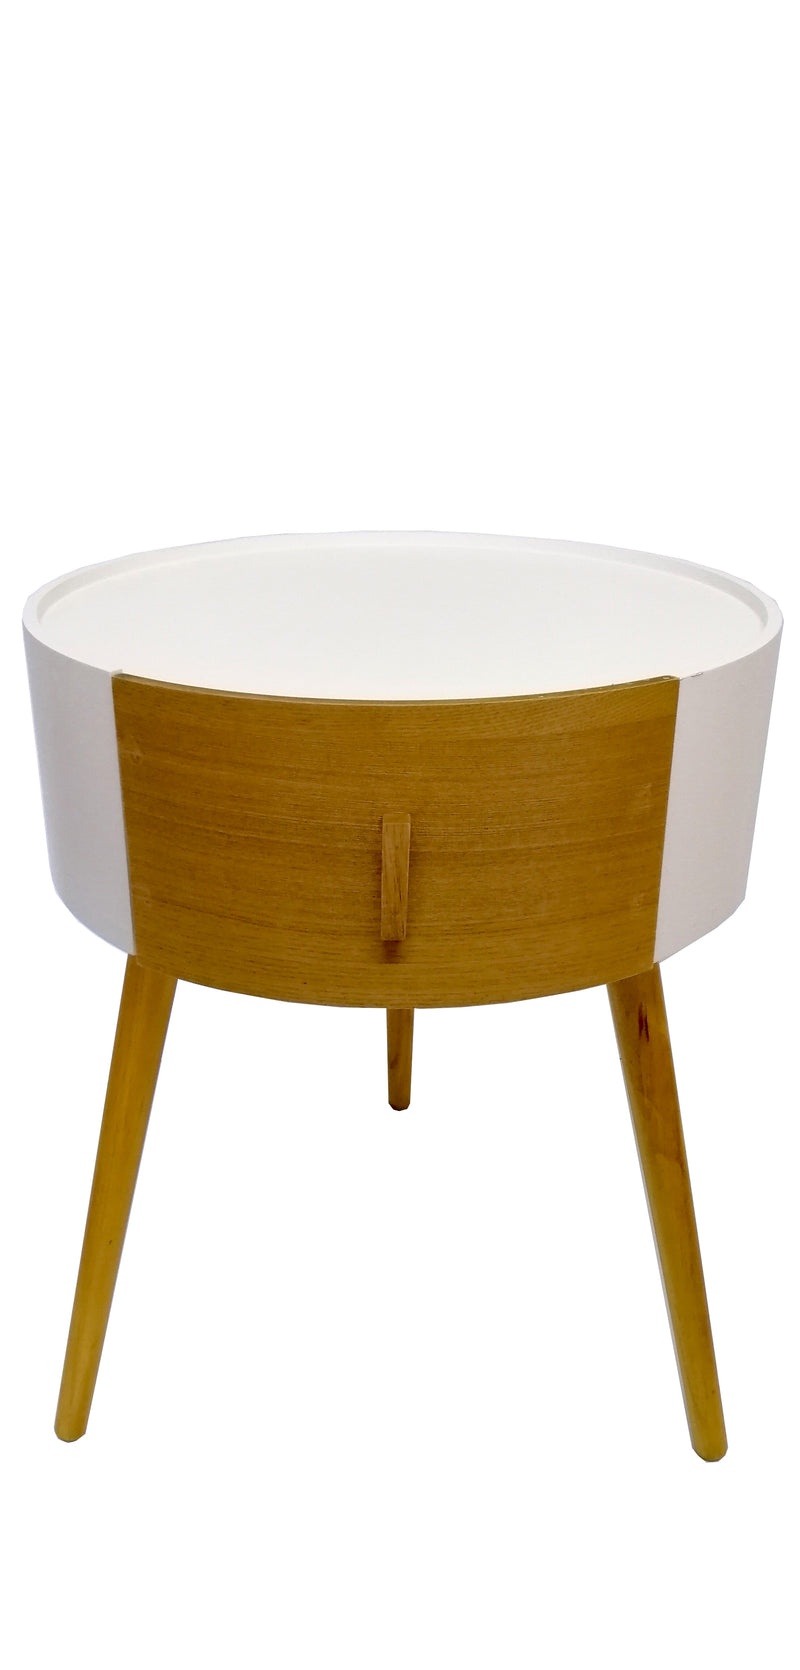 Round White Wooden Side Table With Draws Bedside Table Draw Natural Wood HW-633